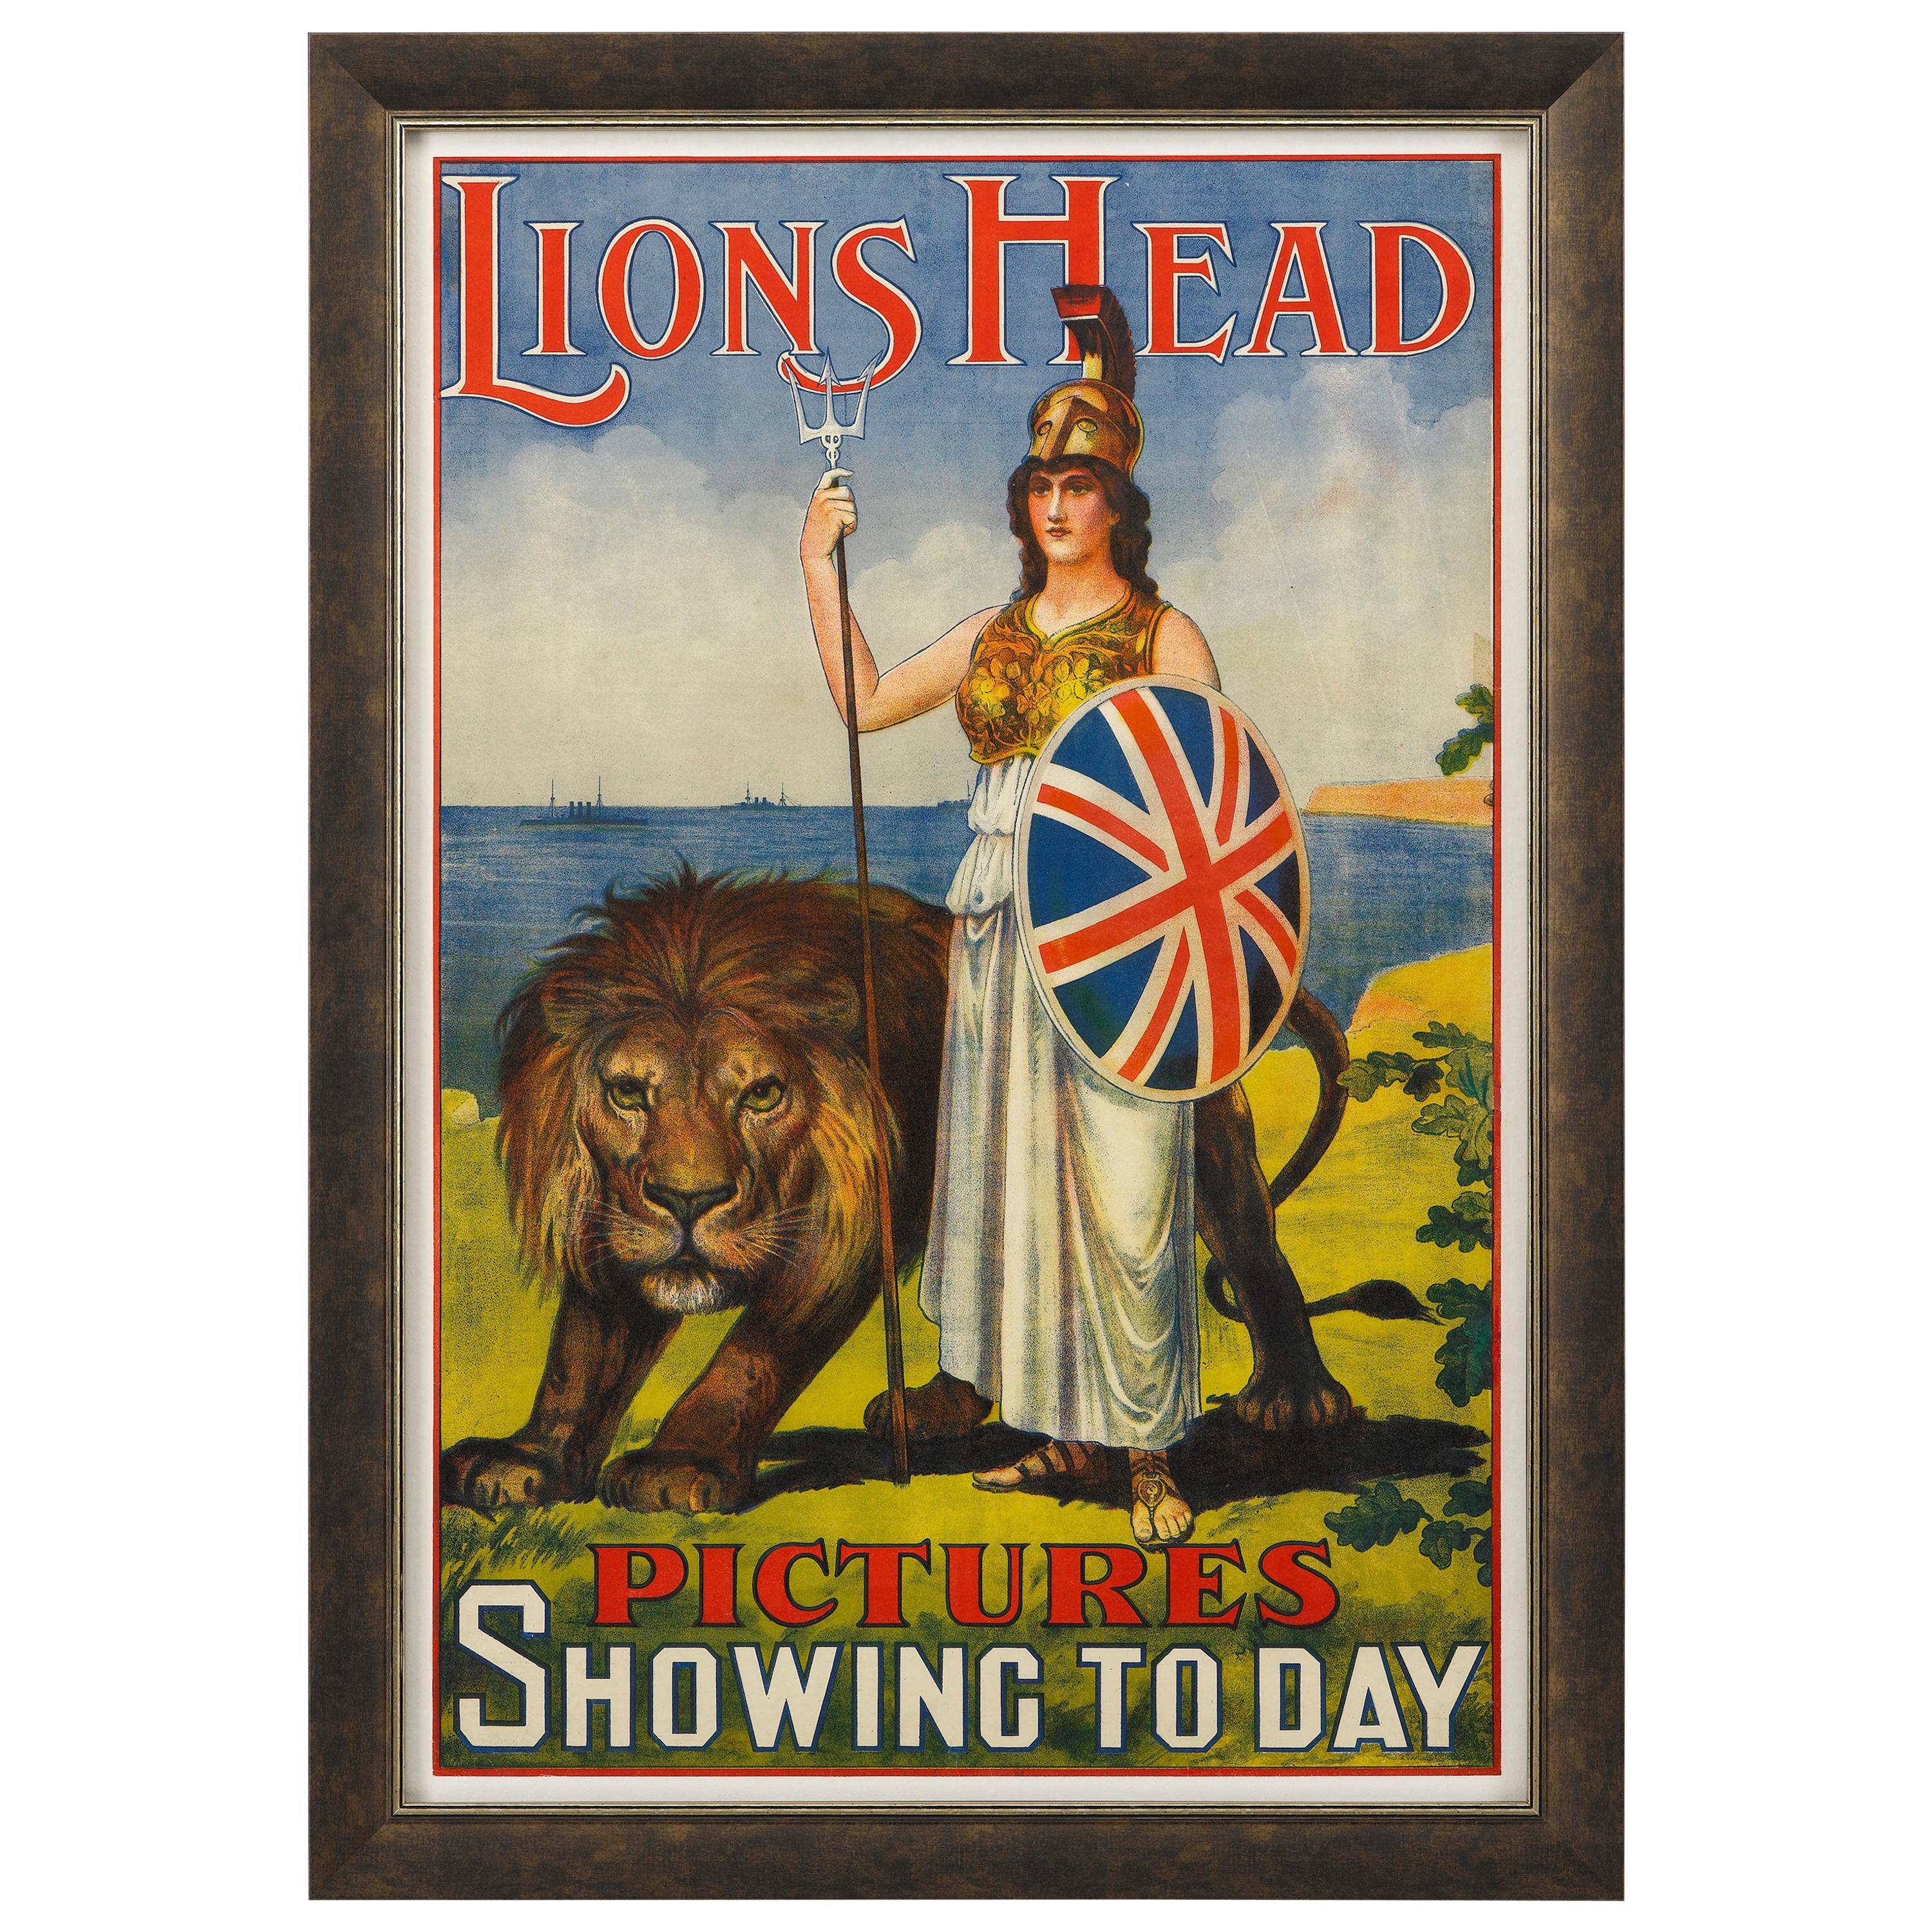 Lions Head Pictures Vintage Cinematic Poster, circa 1911